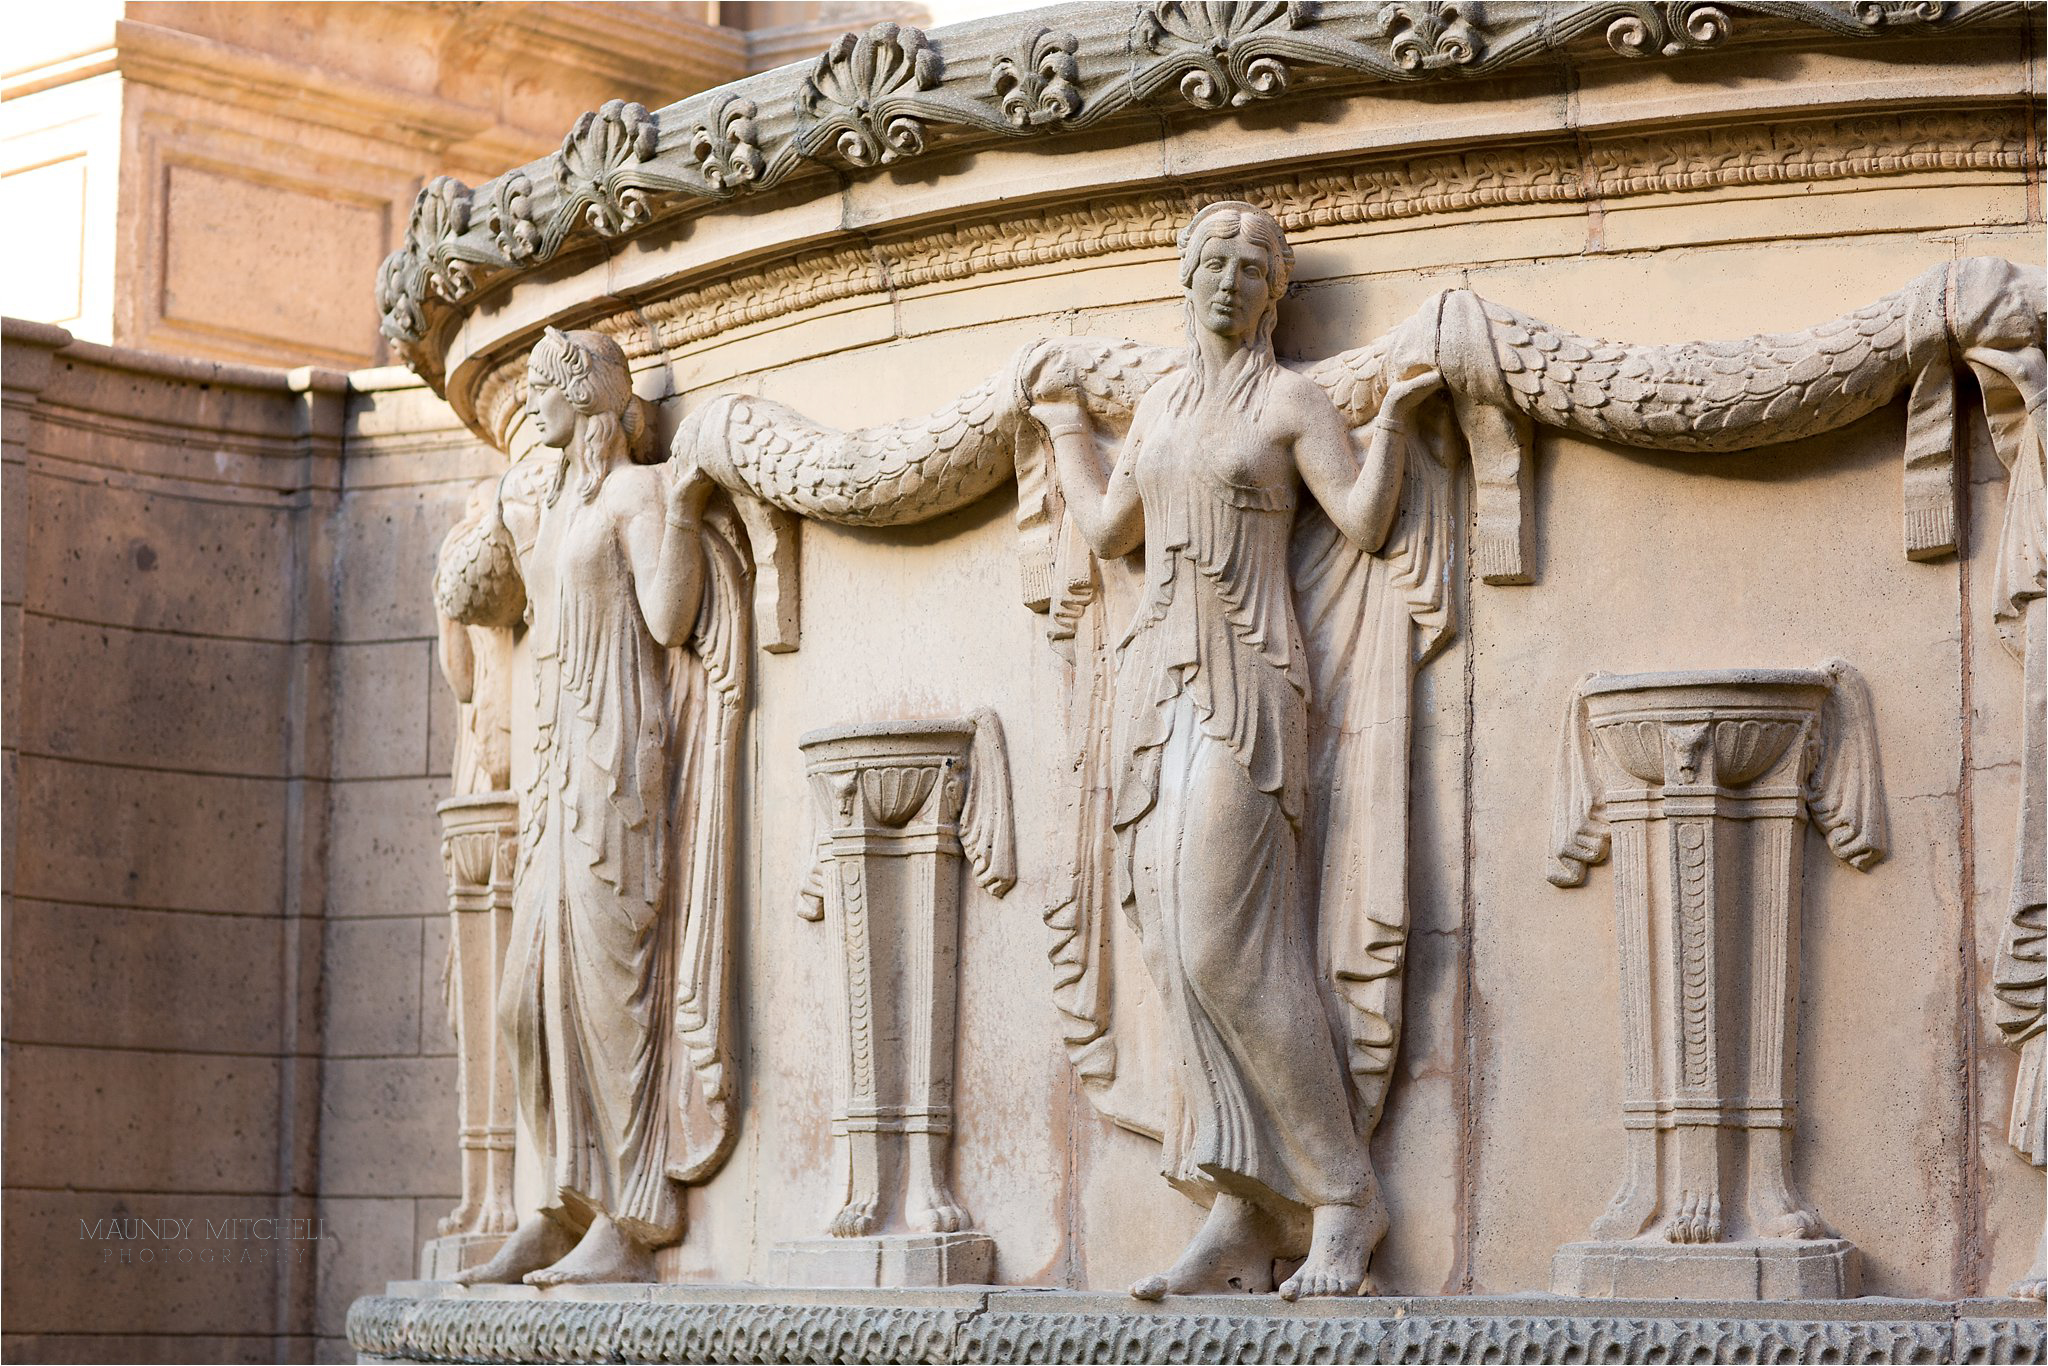 Architectural Detail at The Palace of Fine Arts